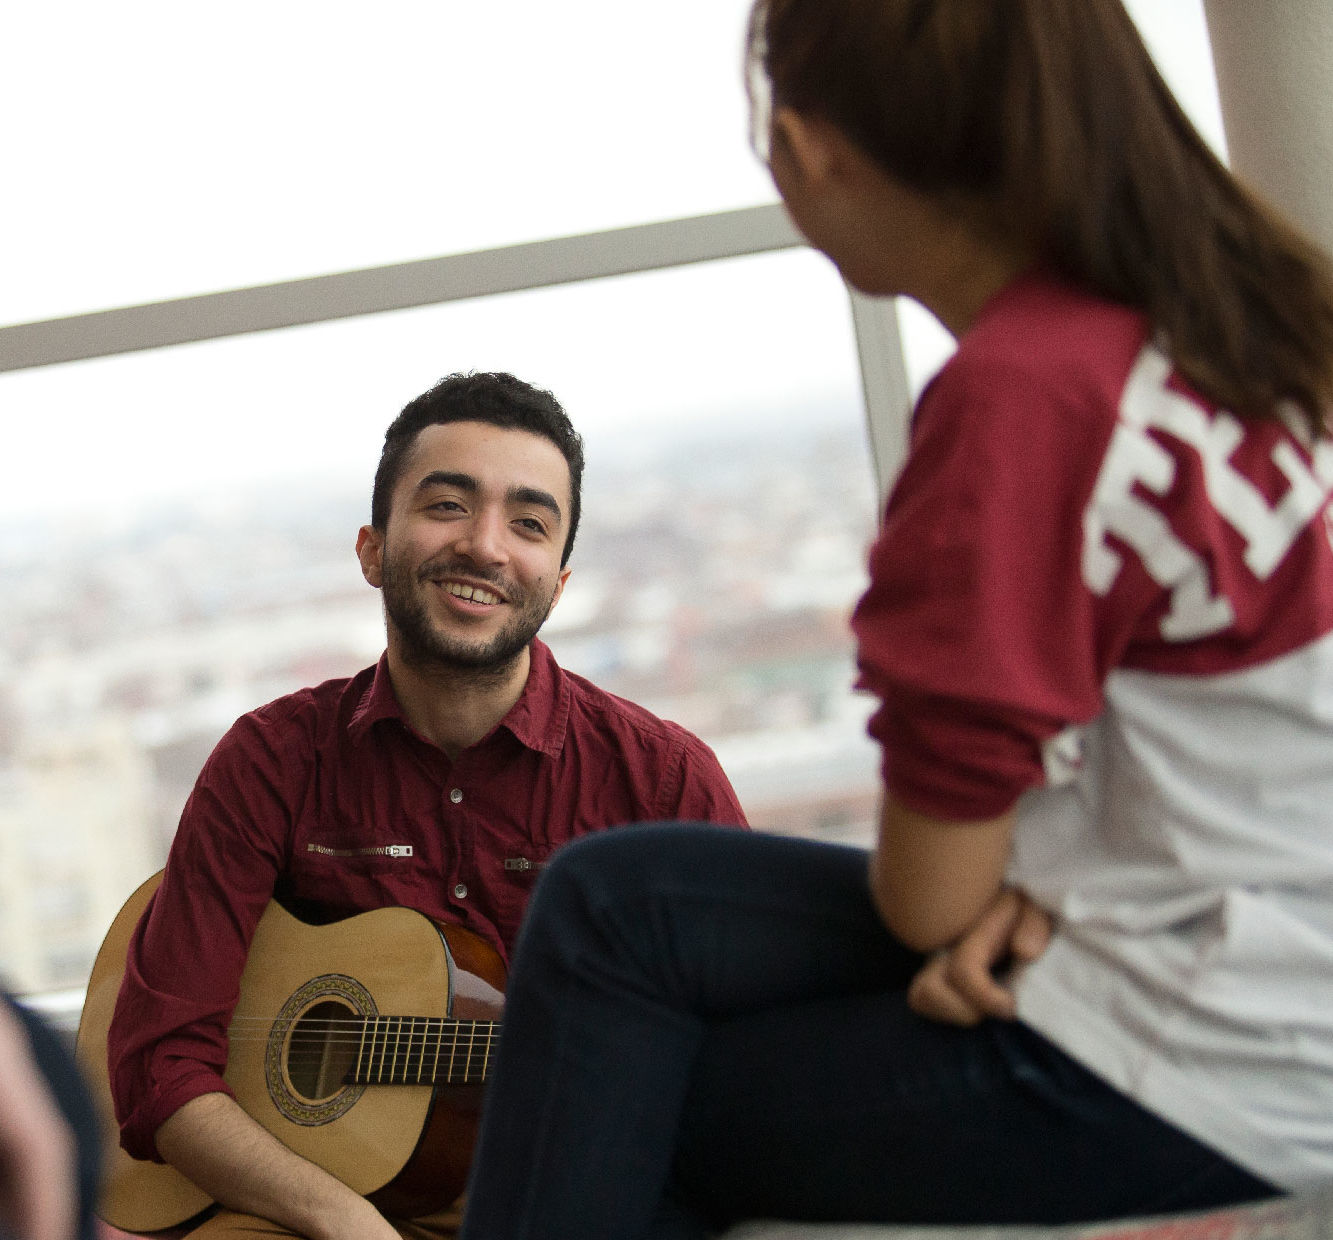 Student with guitar smiling